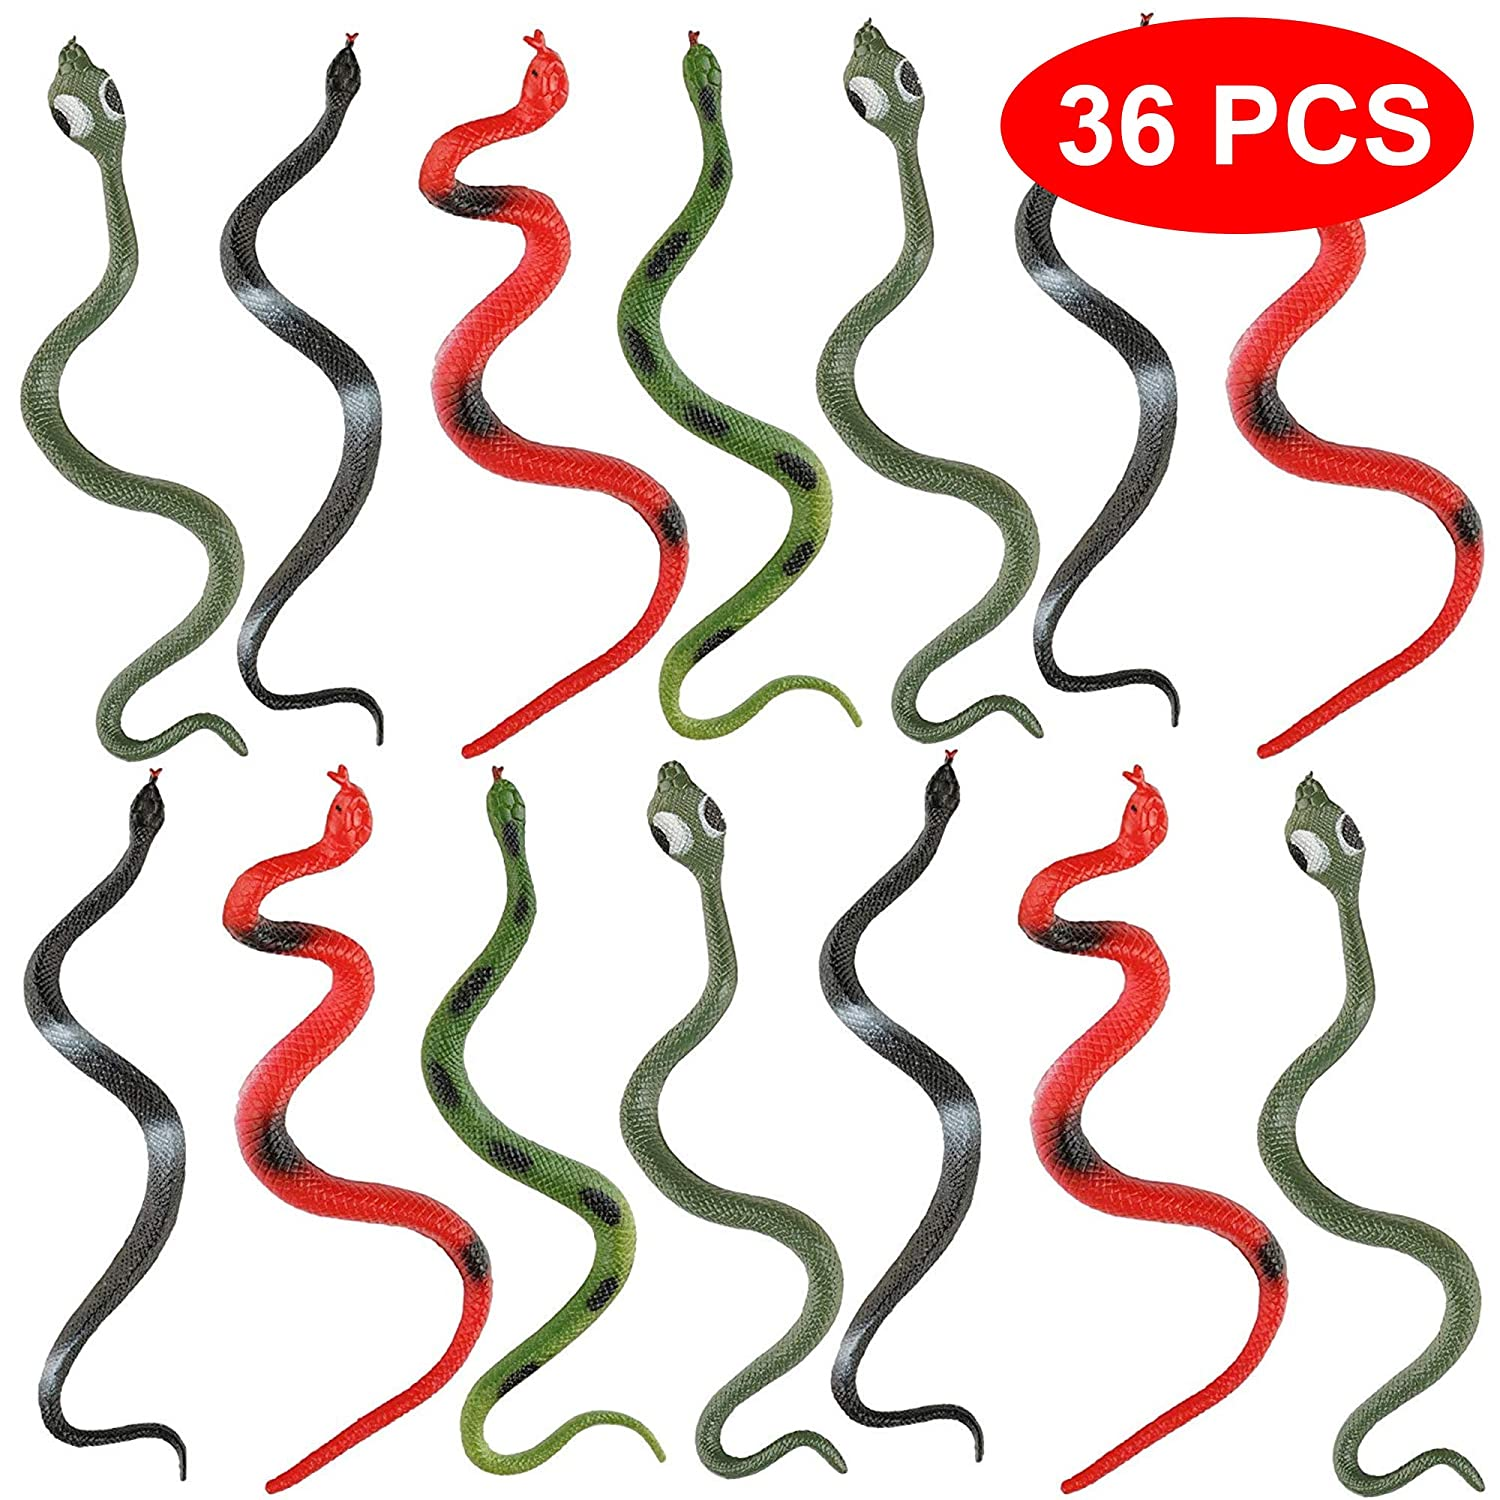 The Twiddlers 36 TPR Fake Snakes - in 6 Different Designs - Ideal for Party Favours, Party Bag fillers, Prank Toys for Halloween - Birthday Parties